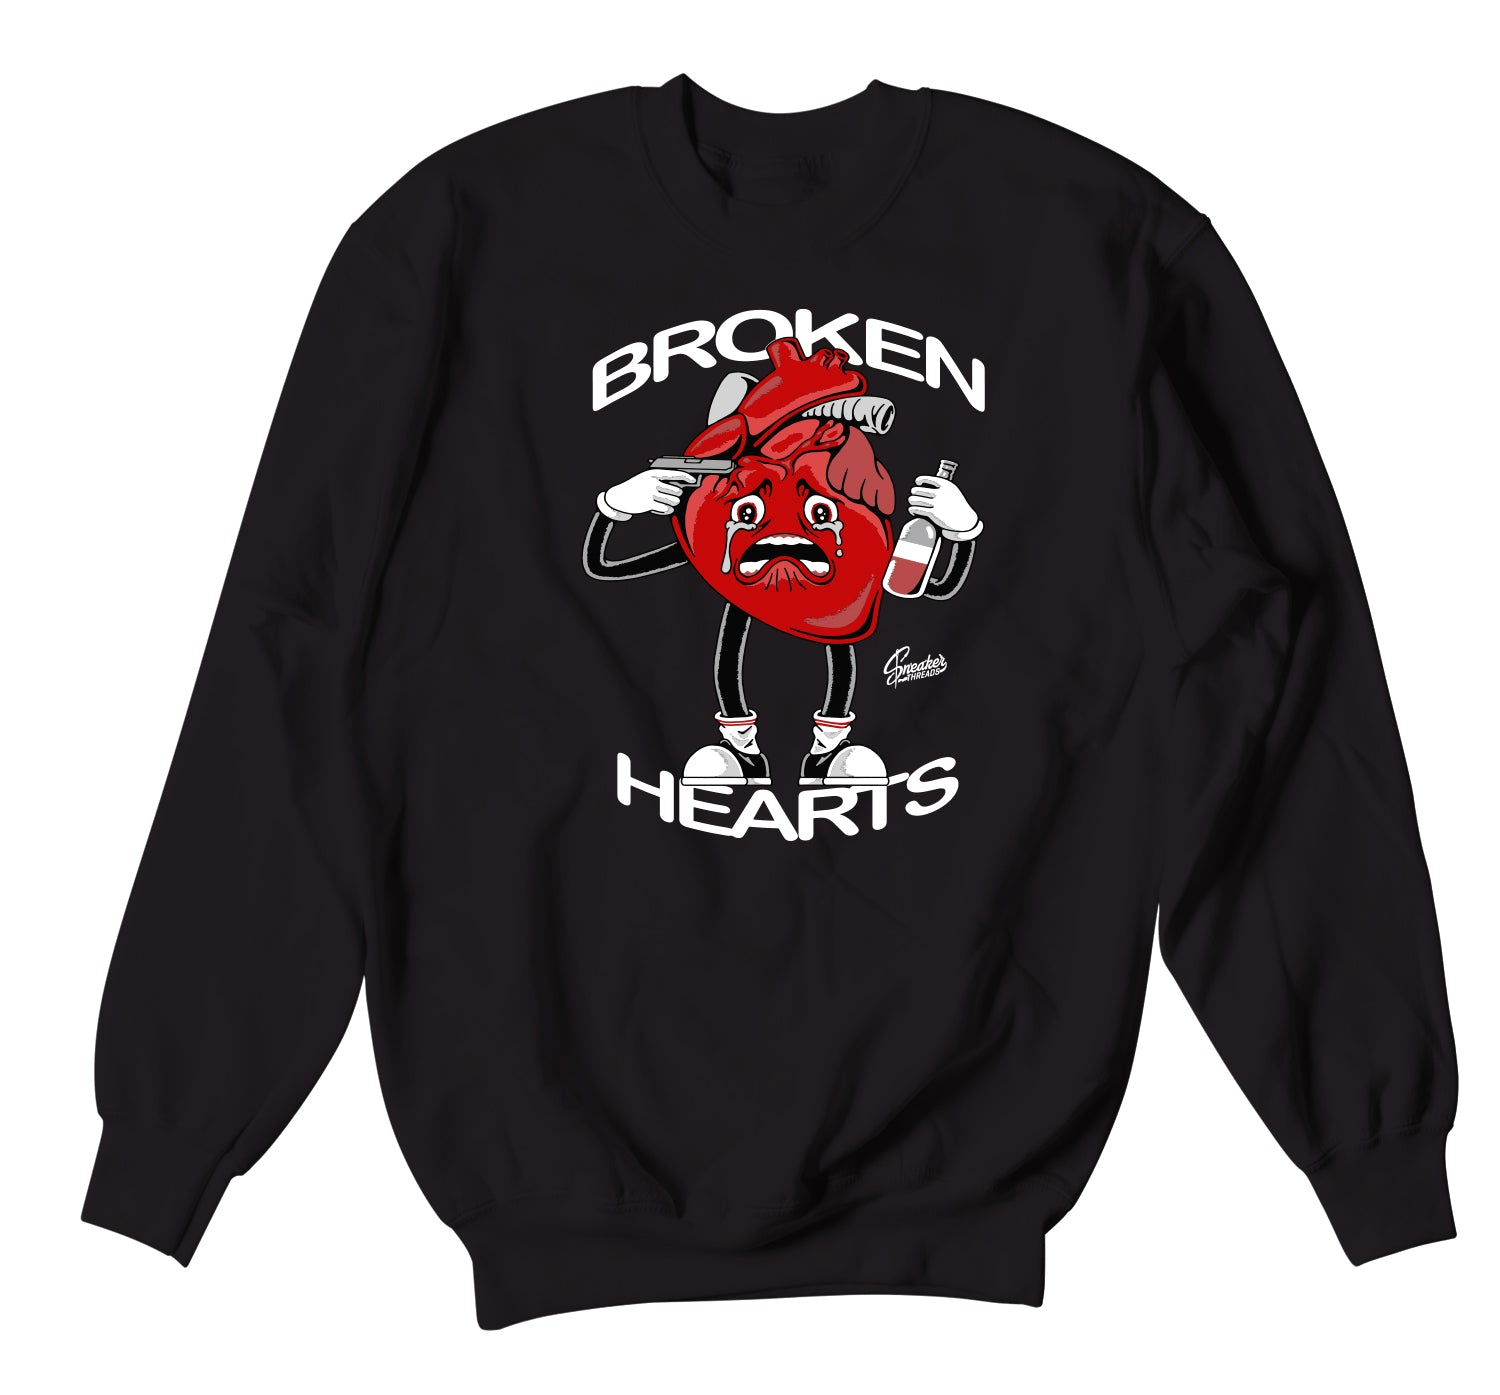 Jordan 6 Carmine Sweater - Broken Hearts - Black